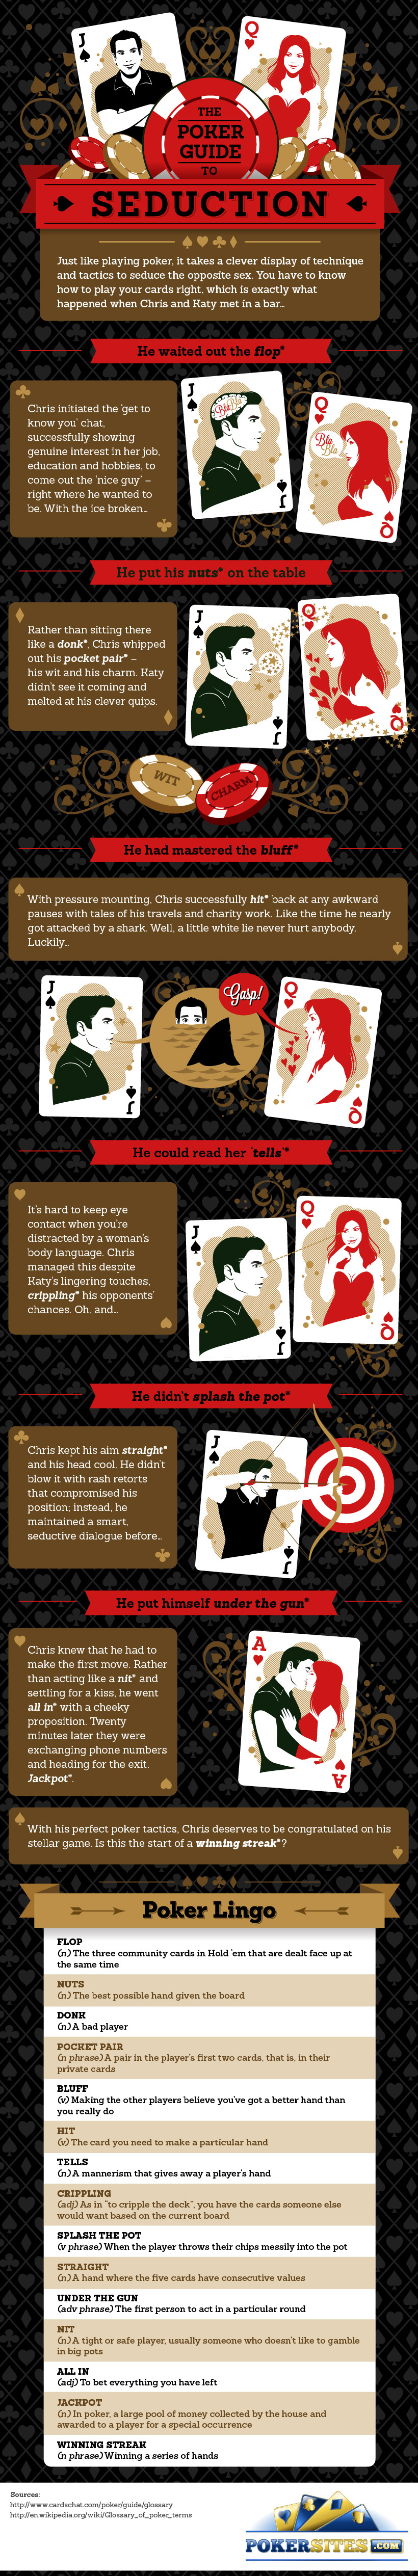 Poker & The Art Of Seduction